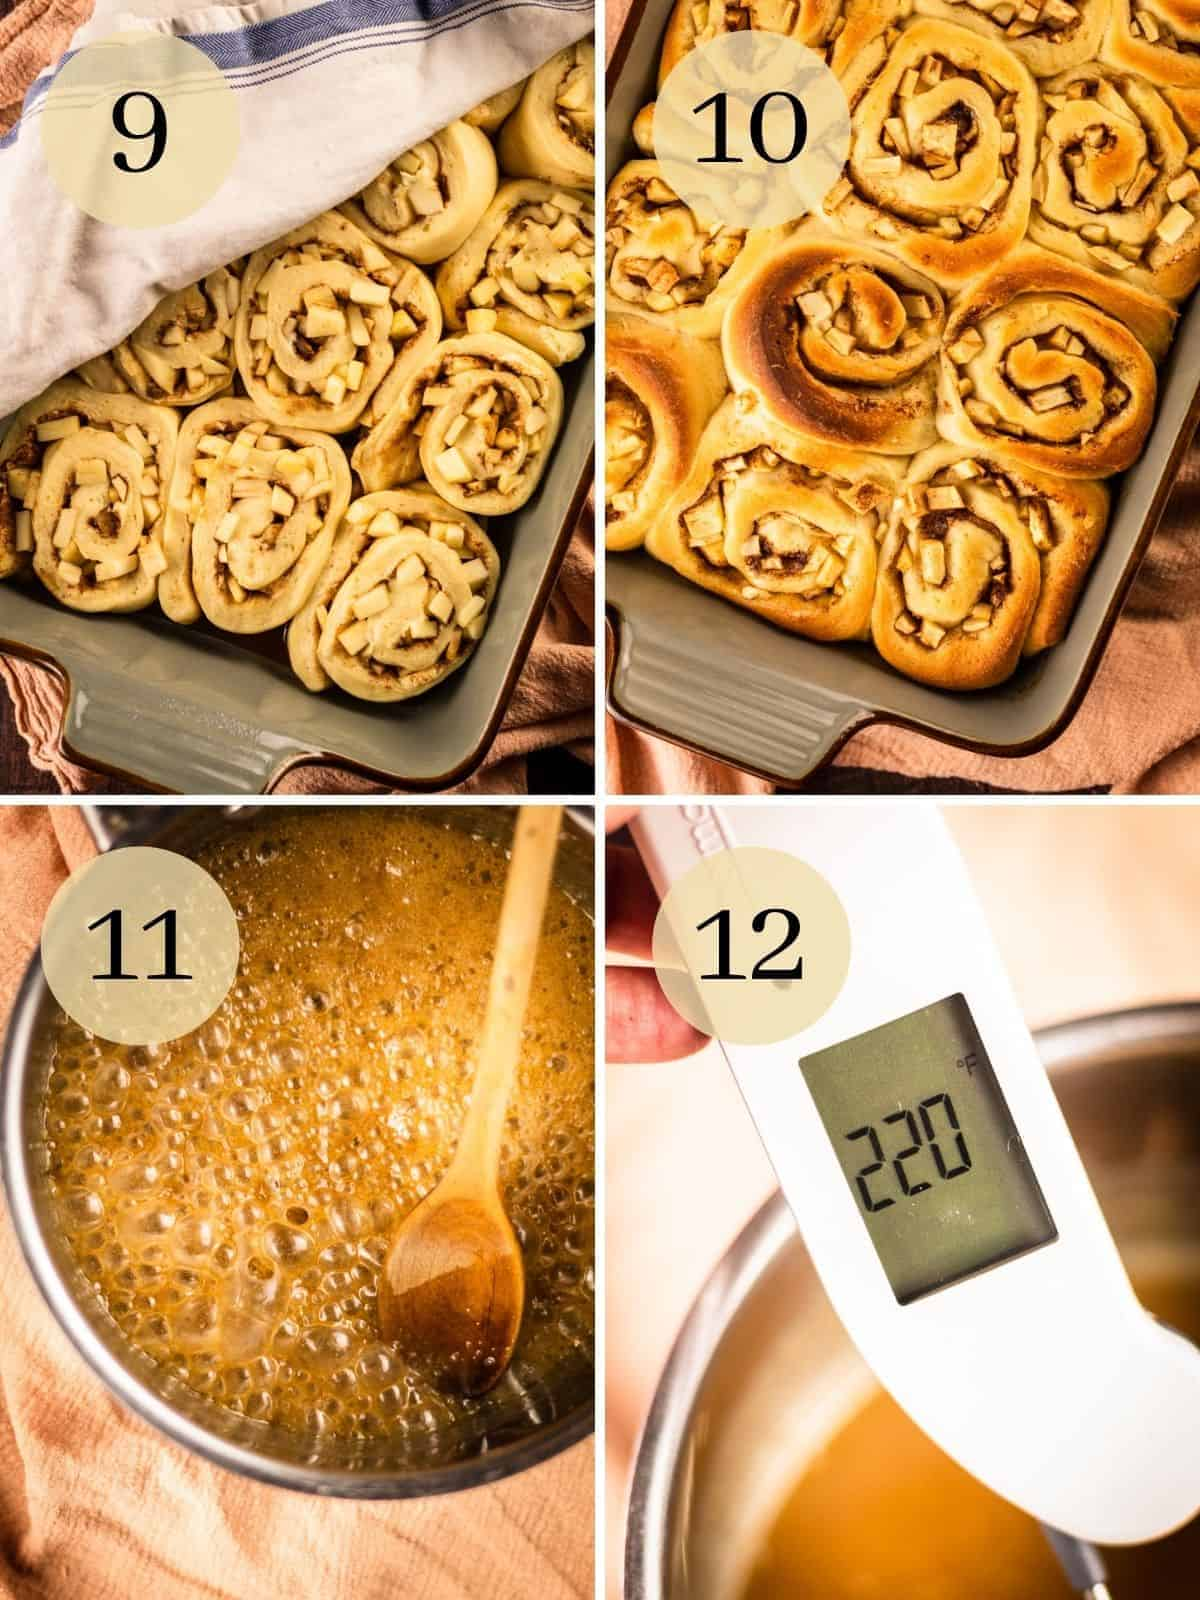 risen cinnamon rolls and then baked cinnamon rolls, bubbling caramel and thermometer that reads 220